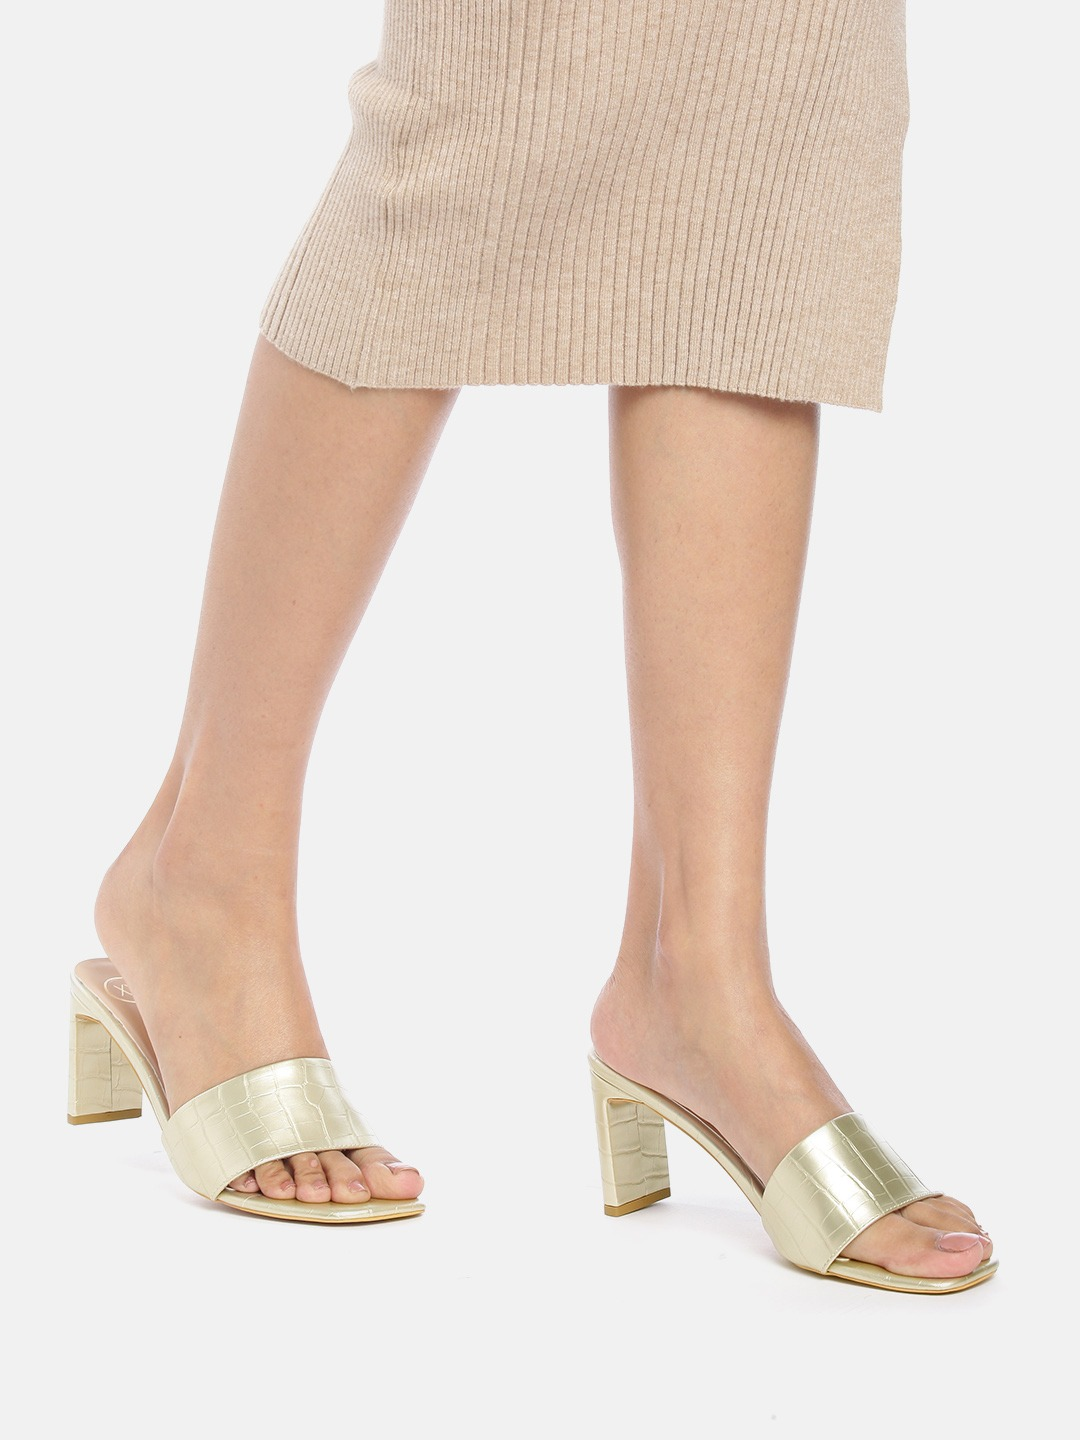 Heels and Wedges-The Textured Beauty Gold Heels7